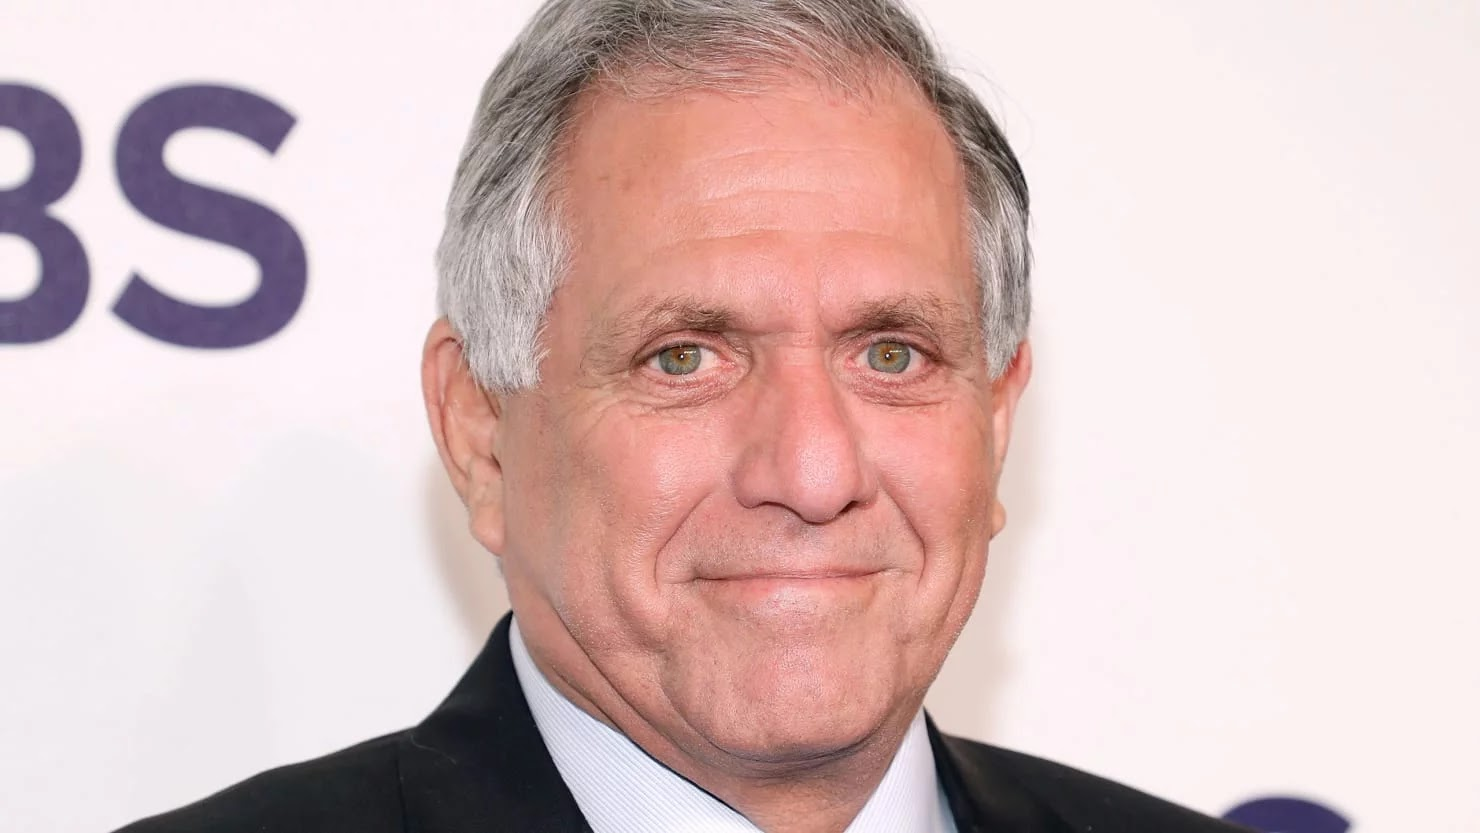 CBS CEO Les Moonves Accused Of Sexual Harassment